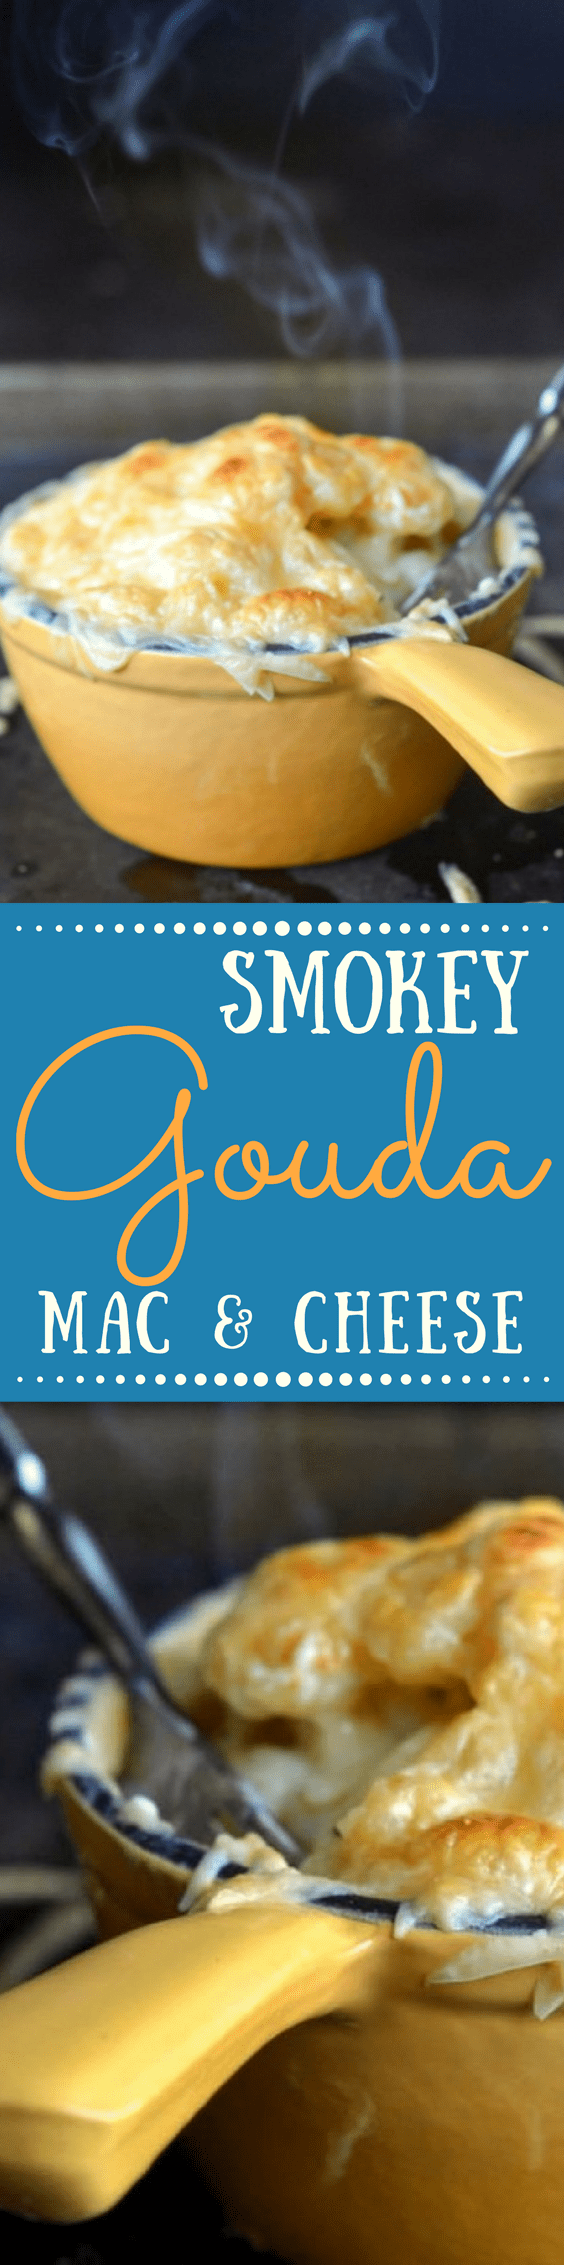 Smoked Gouda Mac & Cheese takes everybody's favorite comfort food up a notch ~ this easy and delicious meal can be on the table in under an hour. #macaroniandcheese #smokedgouda #goudamacaroniandcheese #Easymacandcheese #macandcheeserecipe #pasta #easydinner #onehourdinner #smokedmacaroniandcheeserecipe #comfortfood